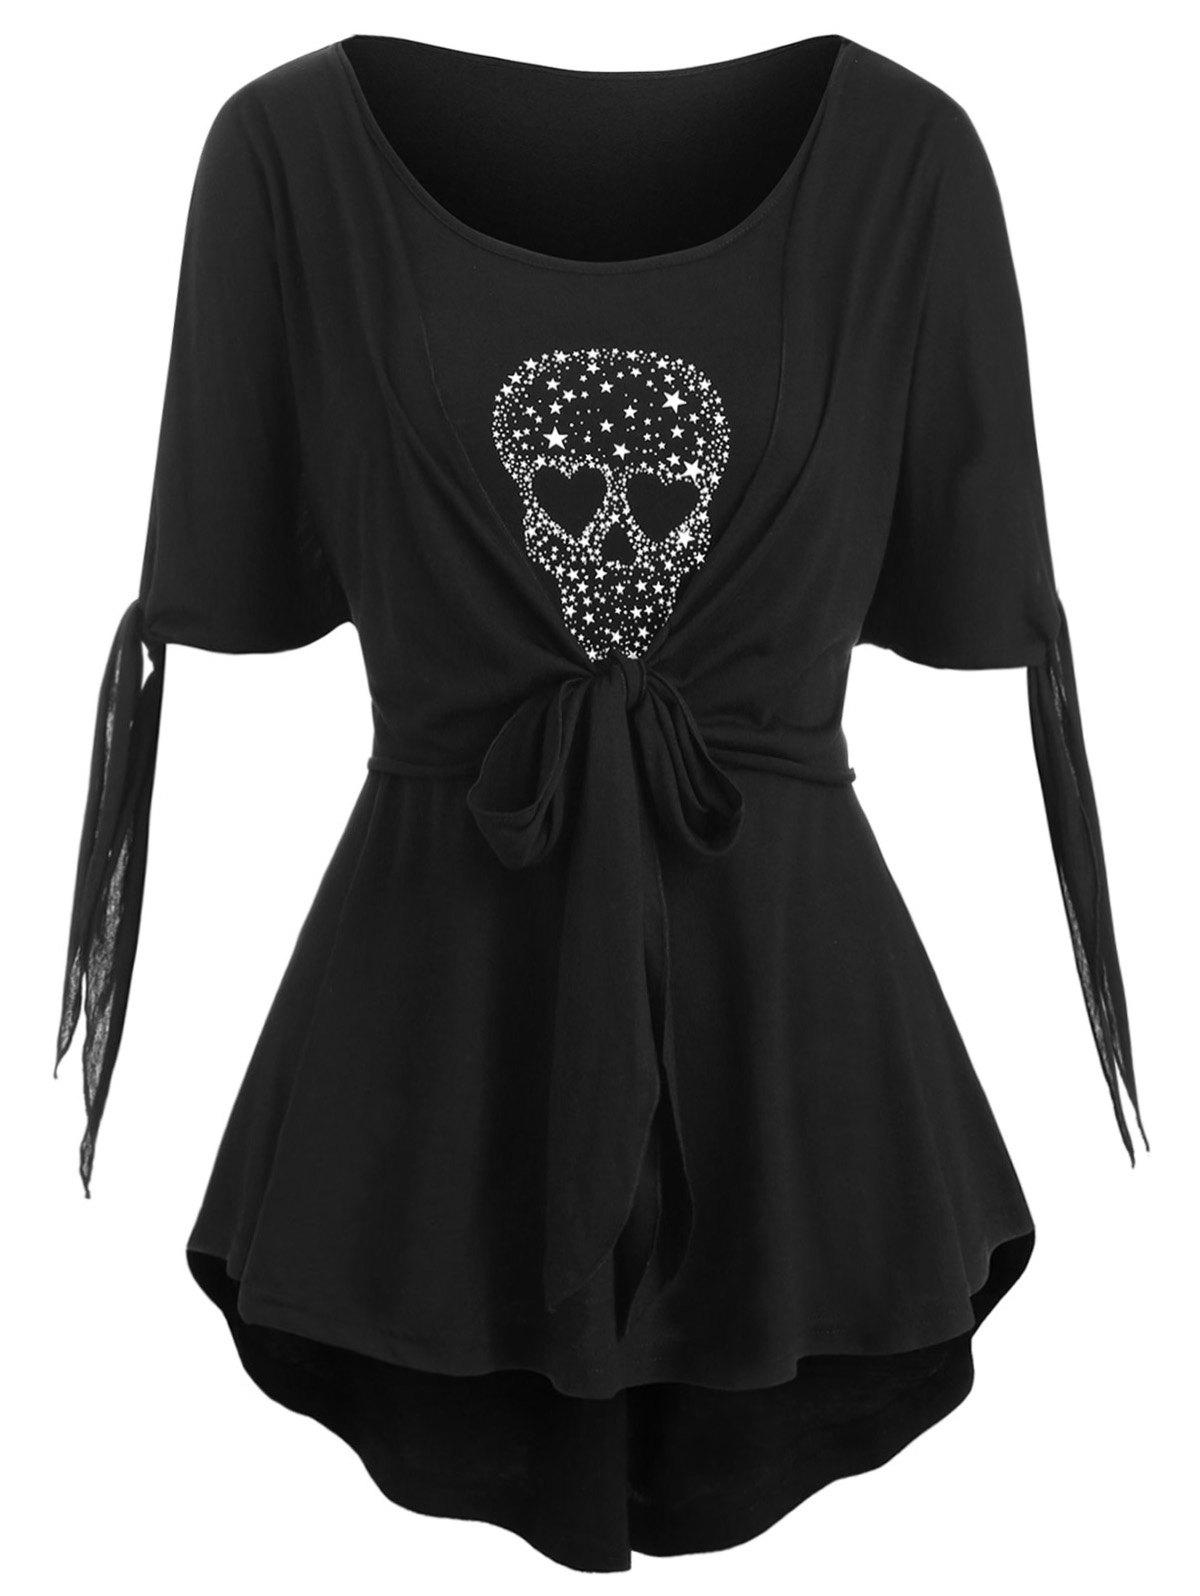 Skull Star Knotted High Low Halloween Plus Size Top - BLACK L